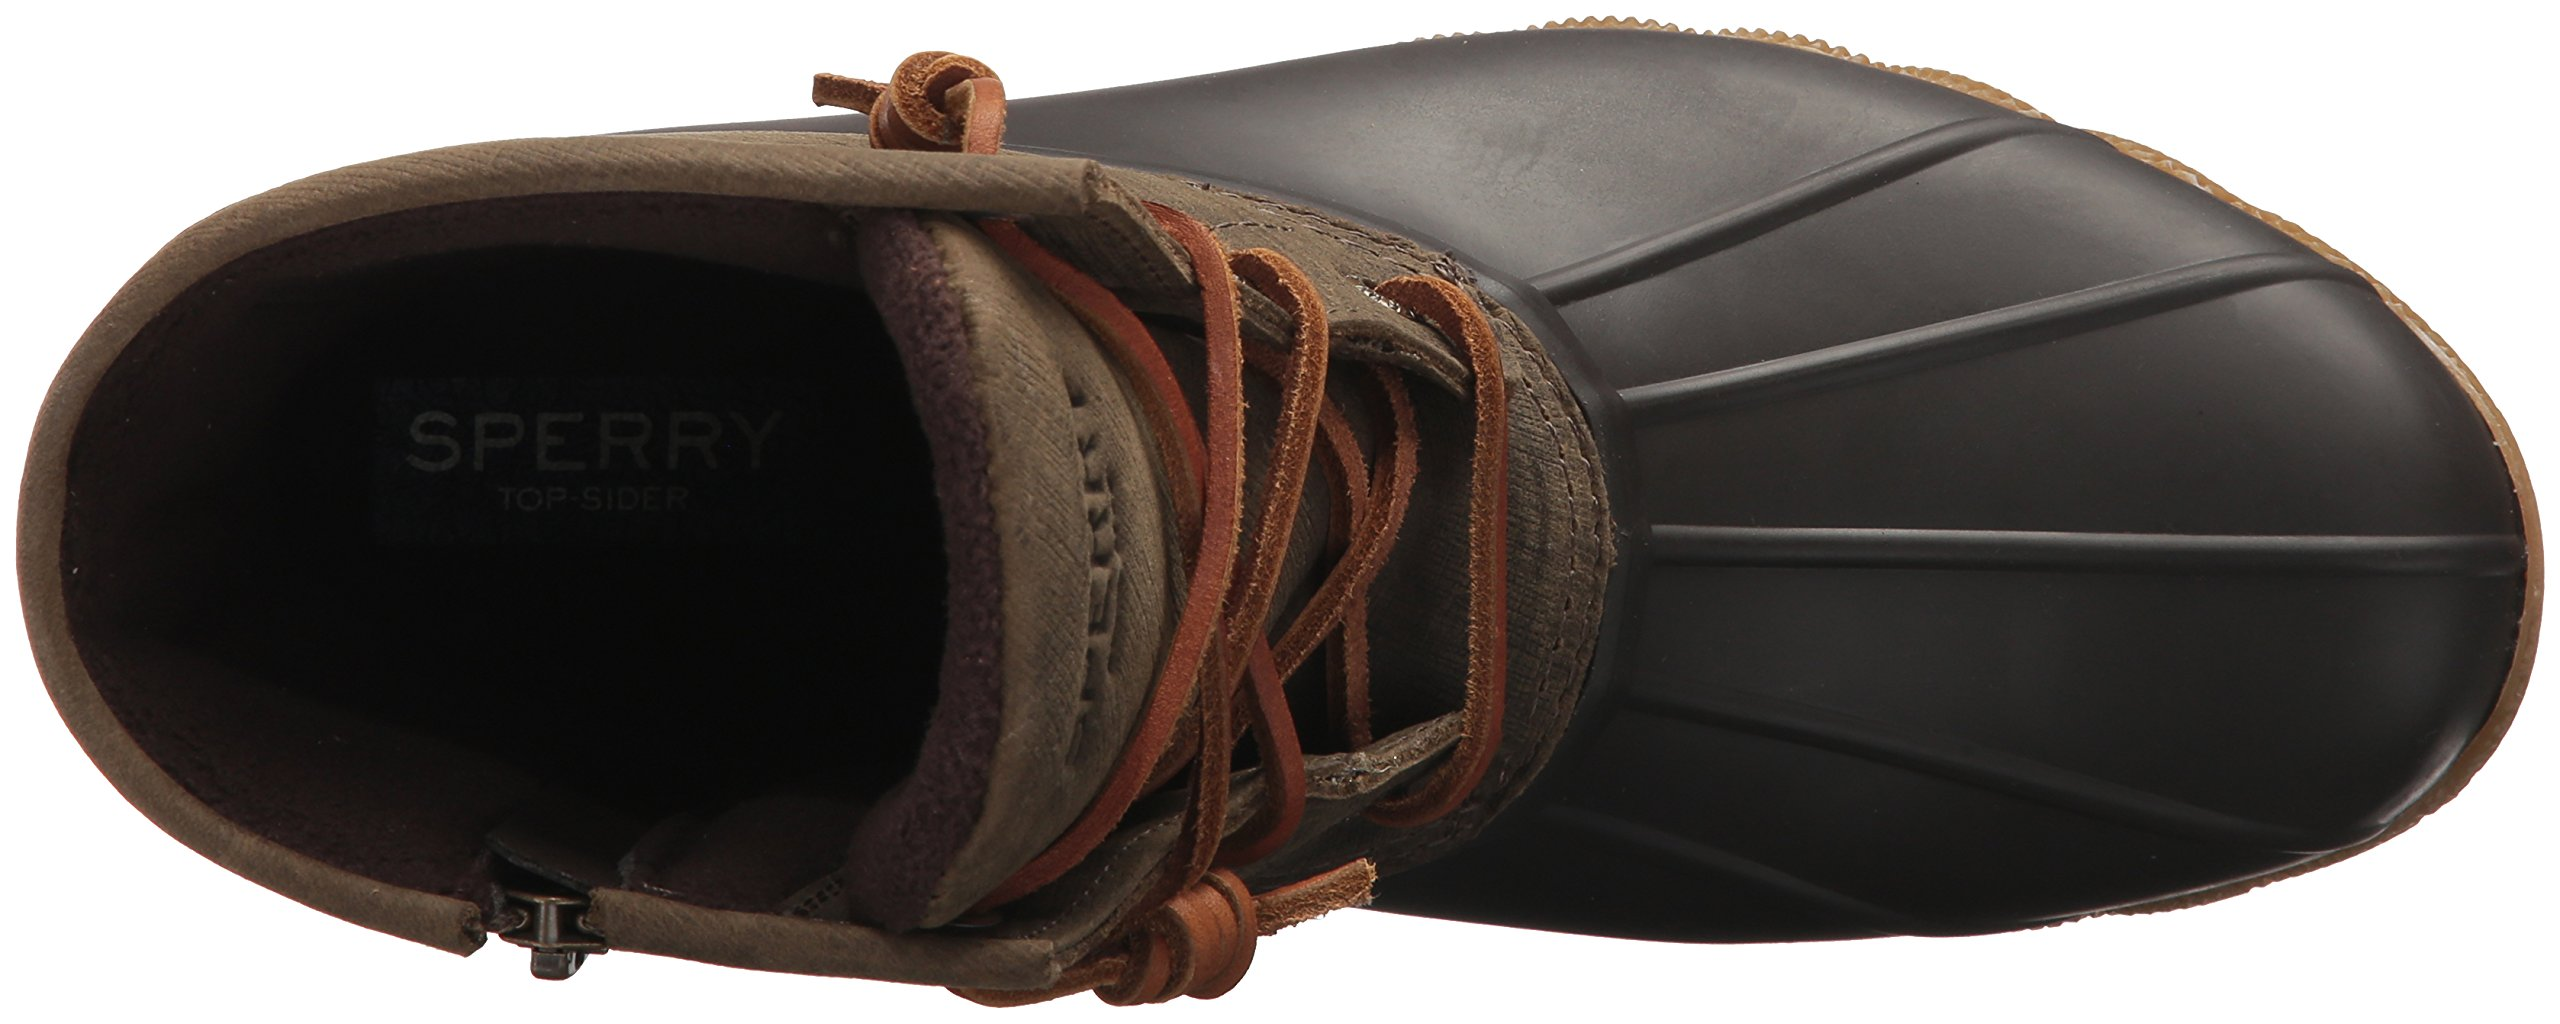 Sperry Top-Sider Women's Saltwater Rain Boot, Brown/Olive, 11 Medium US by Sperry Top-Sider (Image #8)